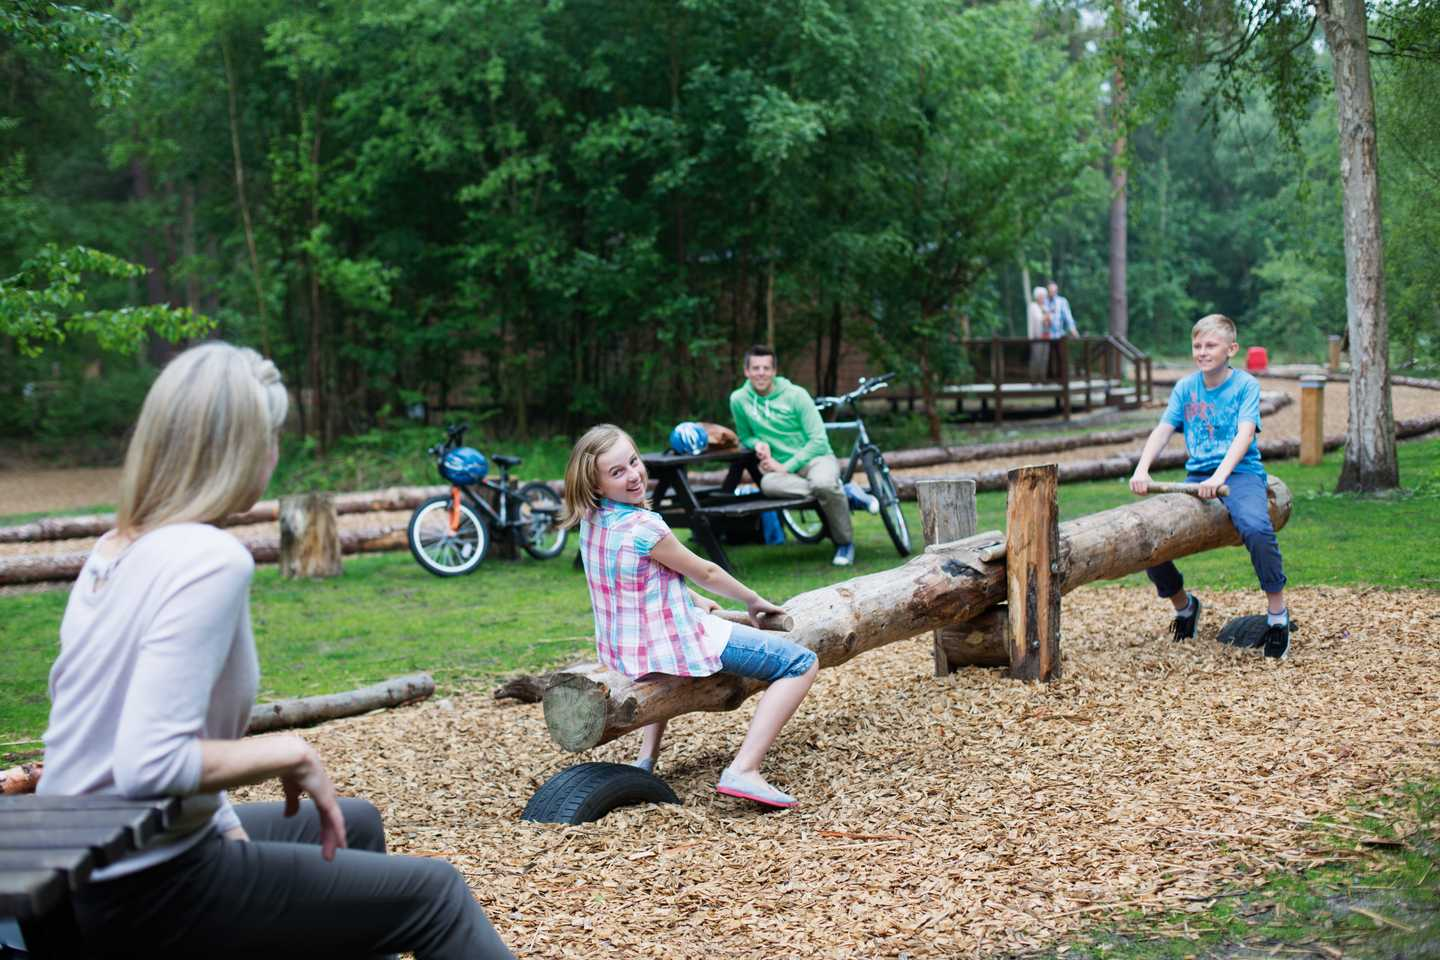 Kids sitting on the seesaw in the outdoor play area